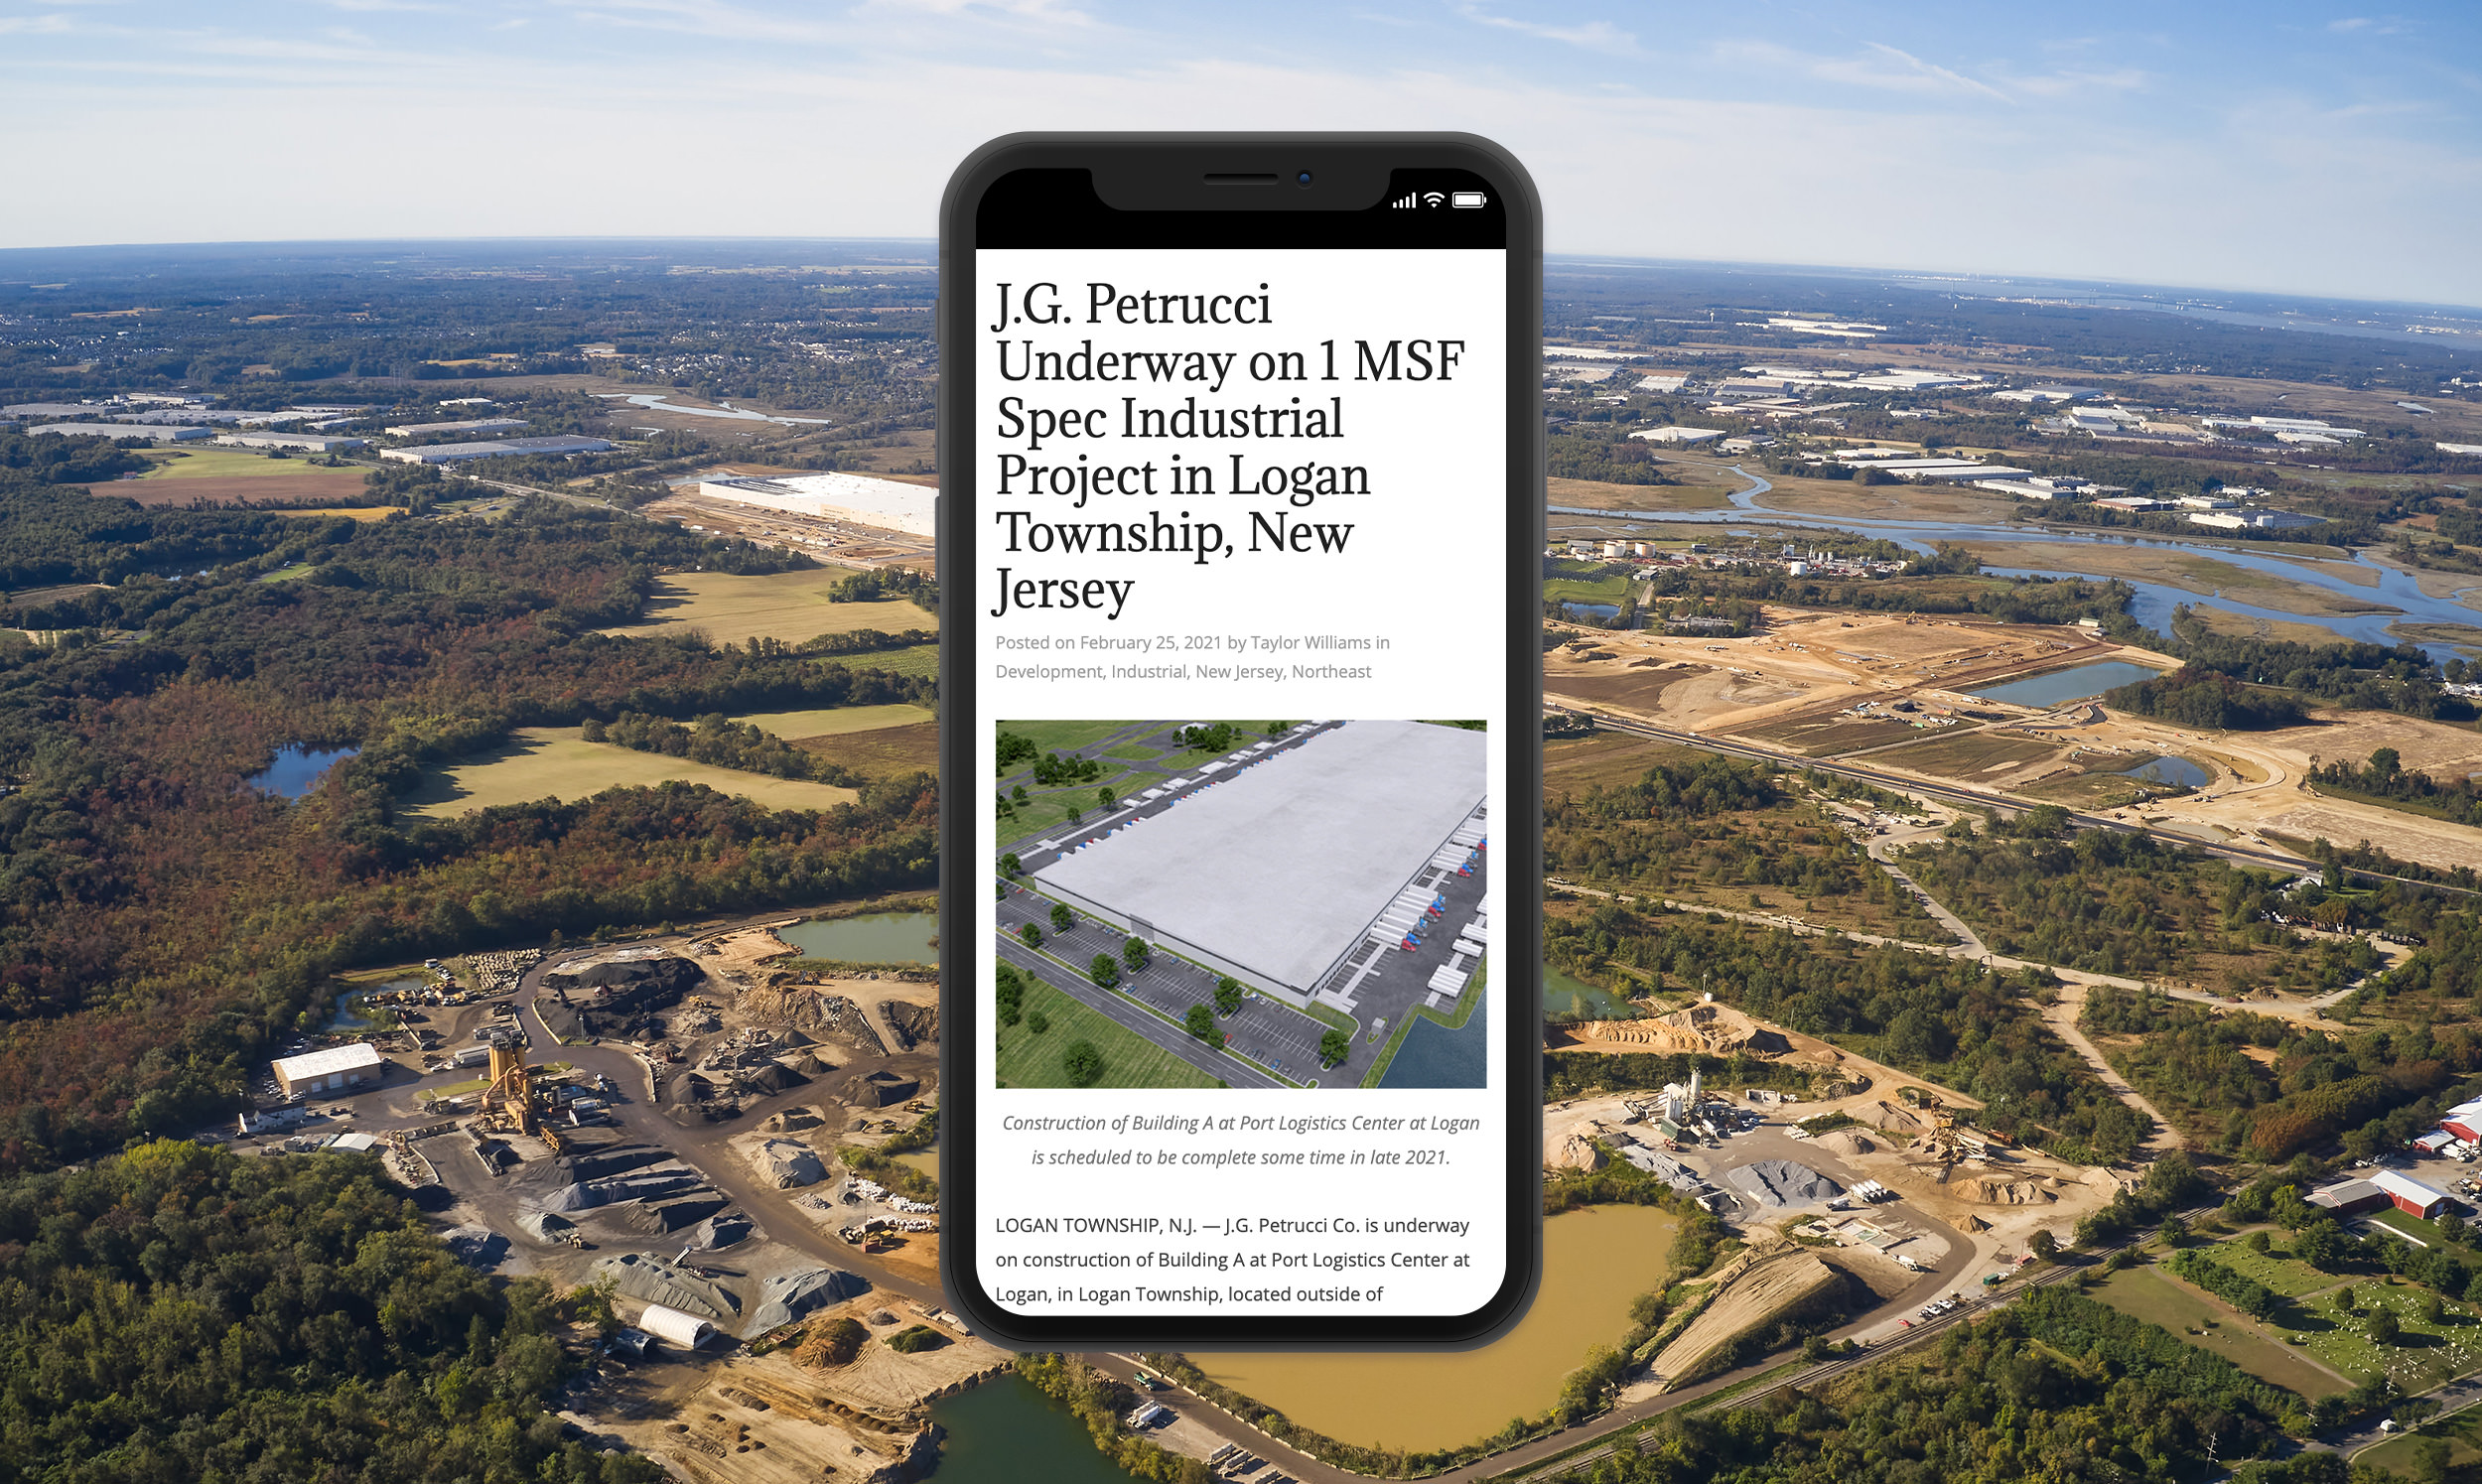 J.G. Petrucci Underway on 1 MSF Spec Industrial Project in Logan Township, New Jersey